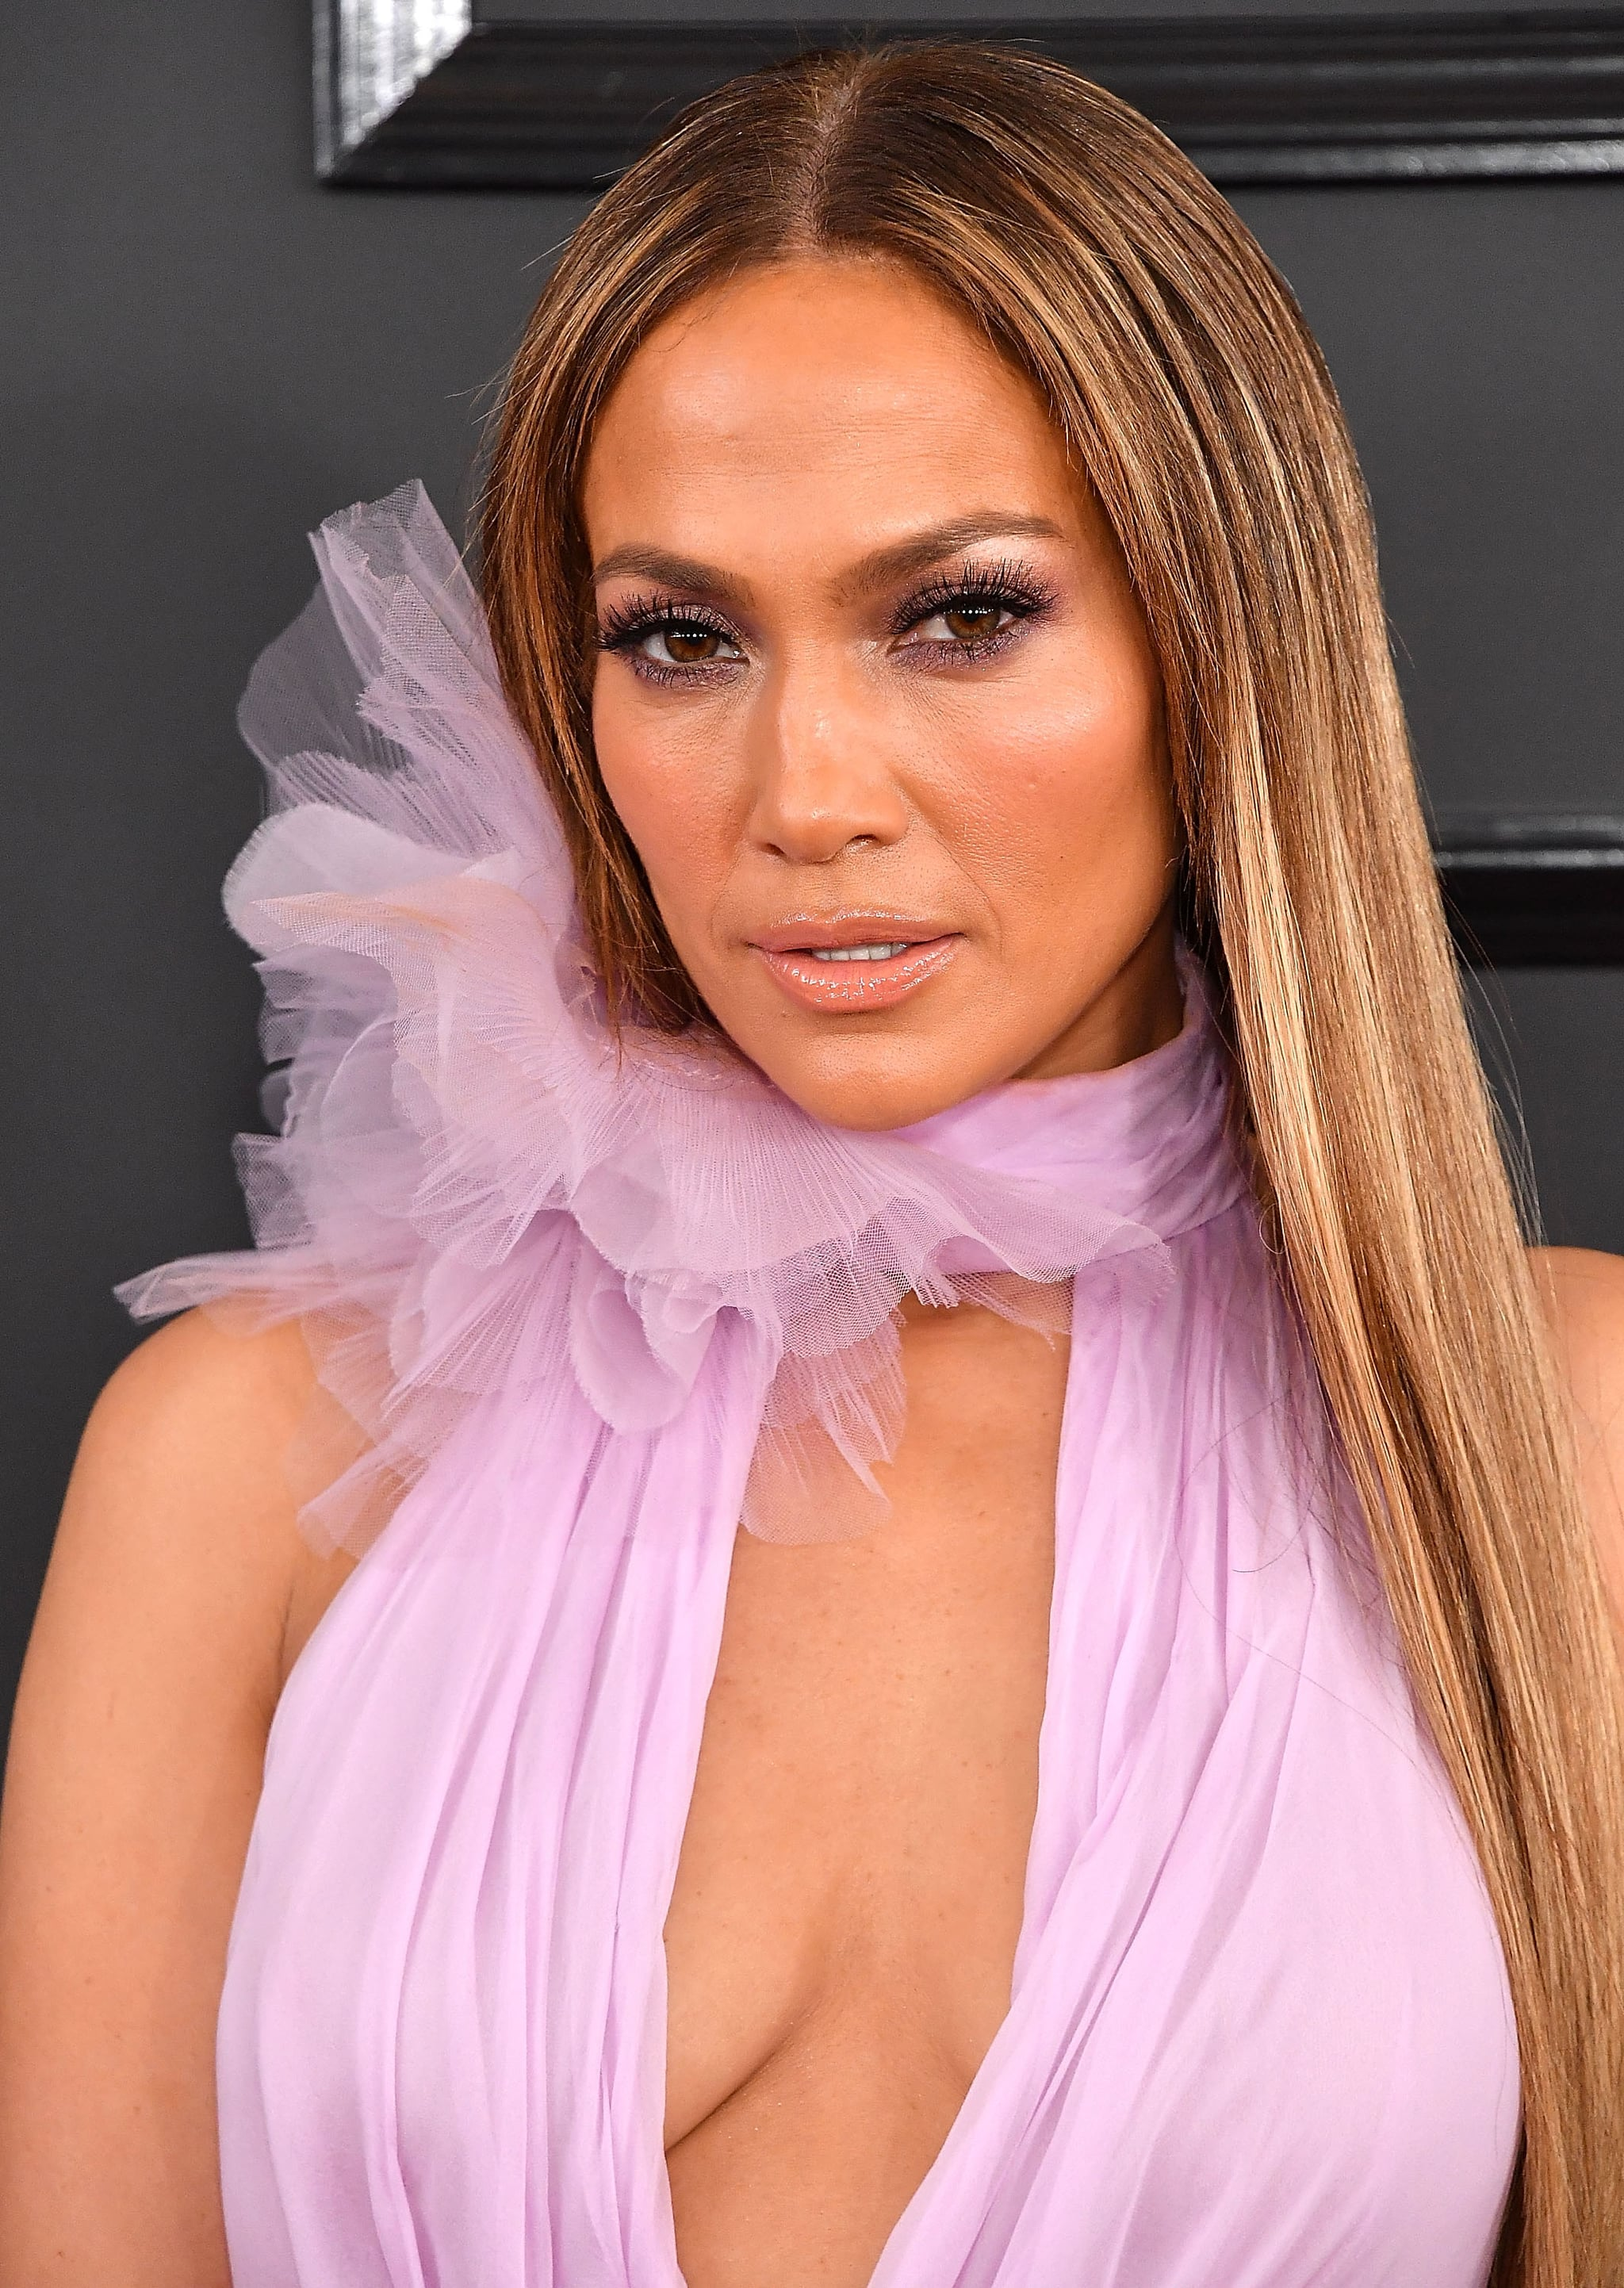 LOS ANGELES, CA - FEBRUARY 12:  Jennifer Lopez arrives at the 59th GRAMMY Awards on February 12, 2017 in Los Angeles, California.  (Photo by Steve Granitz/WireImage)